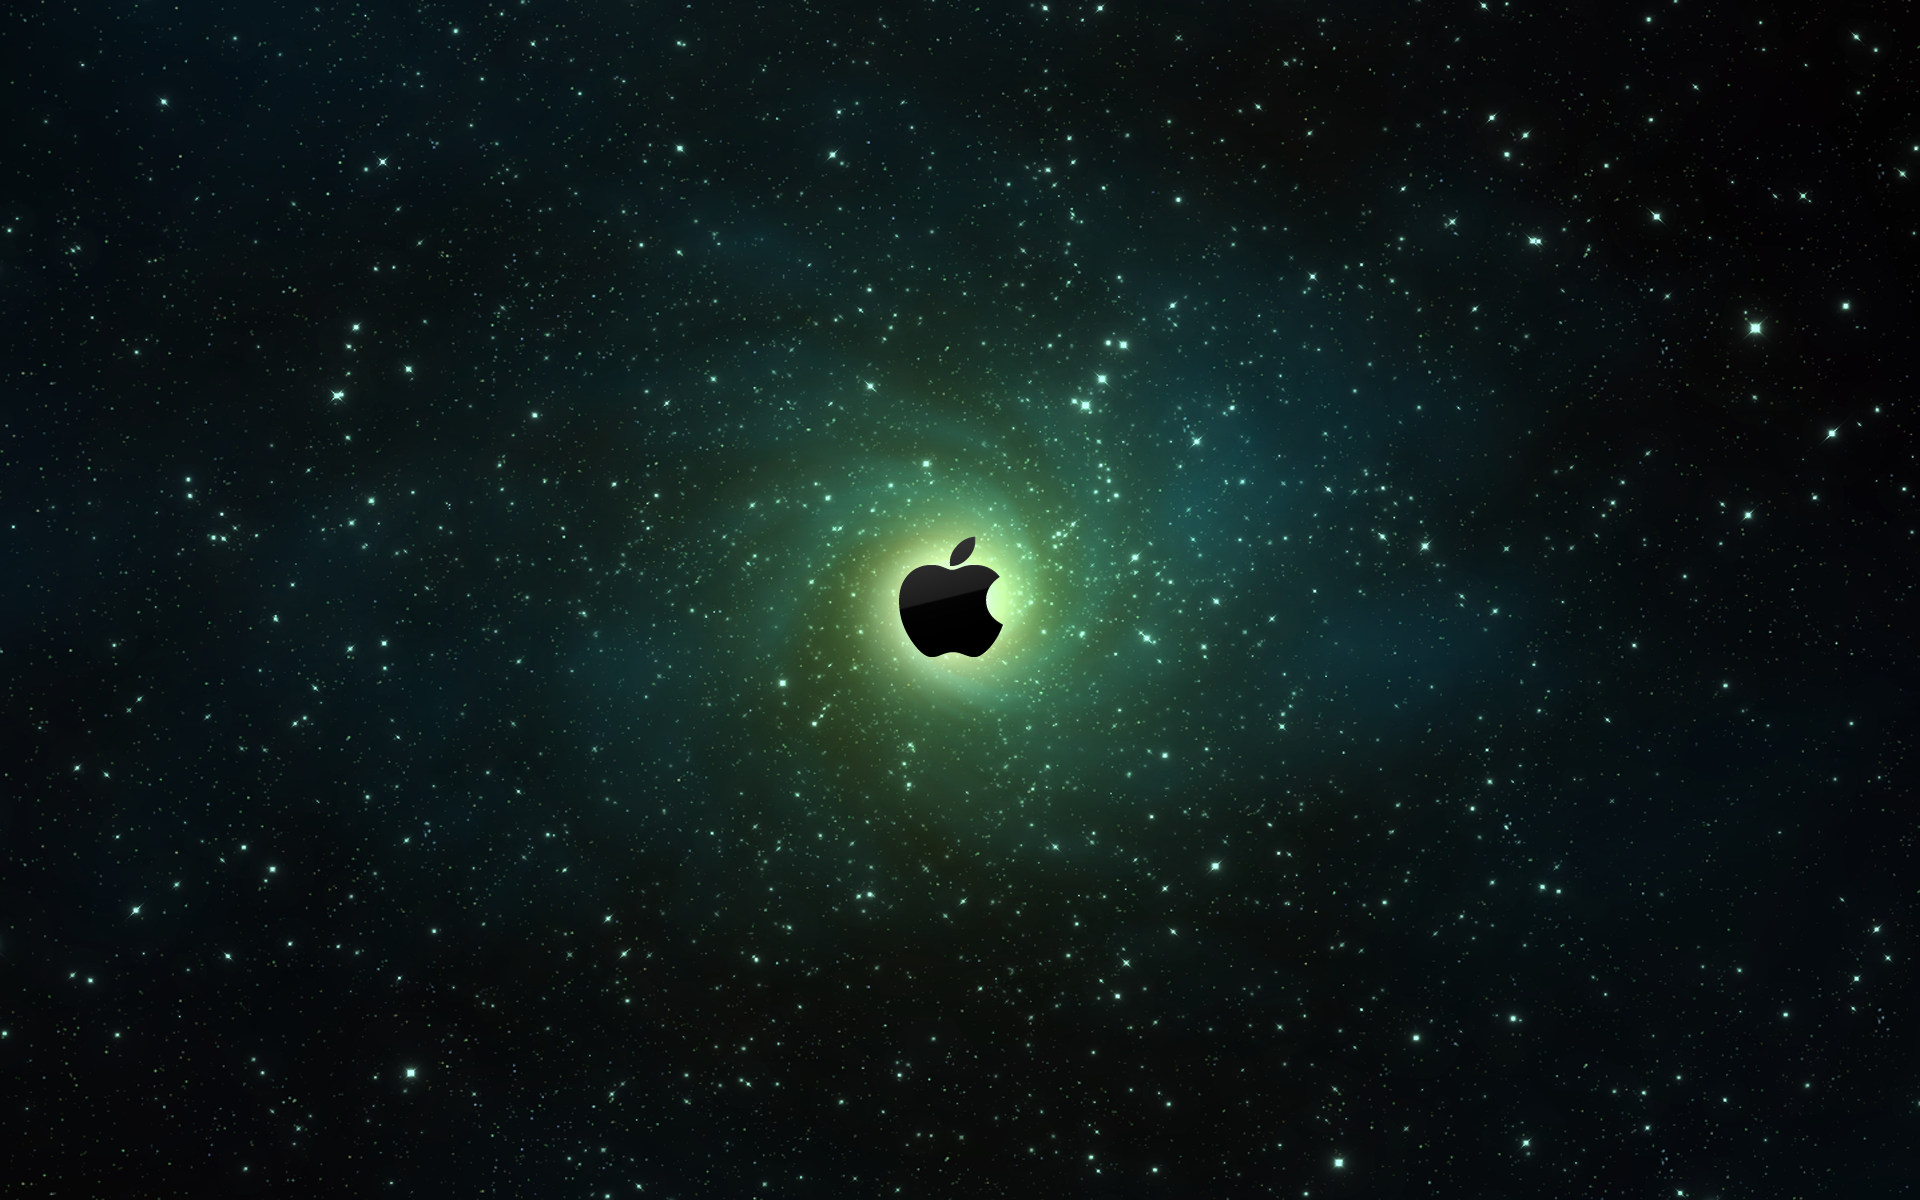 4k ultra hd wallpapers: apple images for desktop, free download, ixy